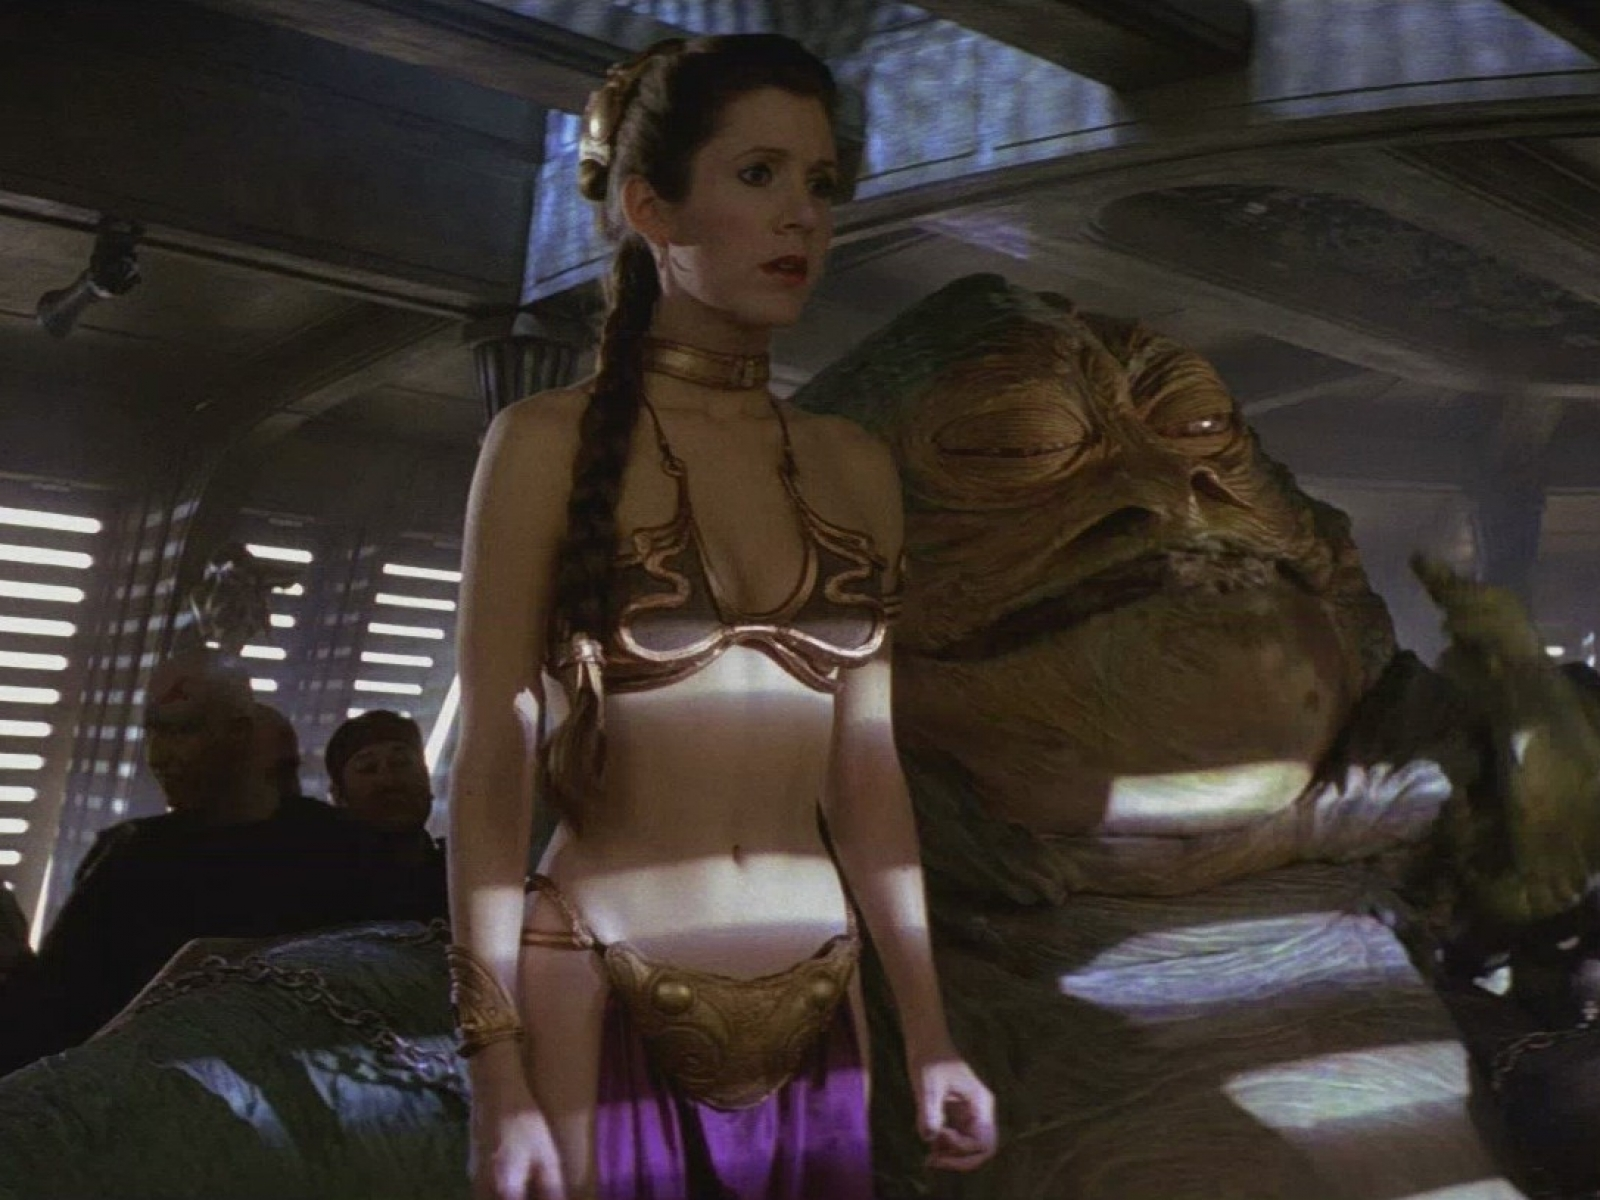 Free nude star wars pictures smut picture